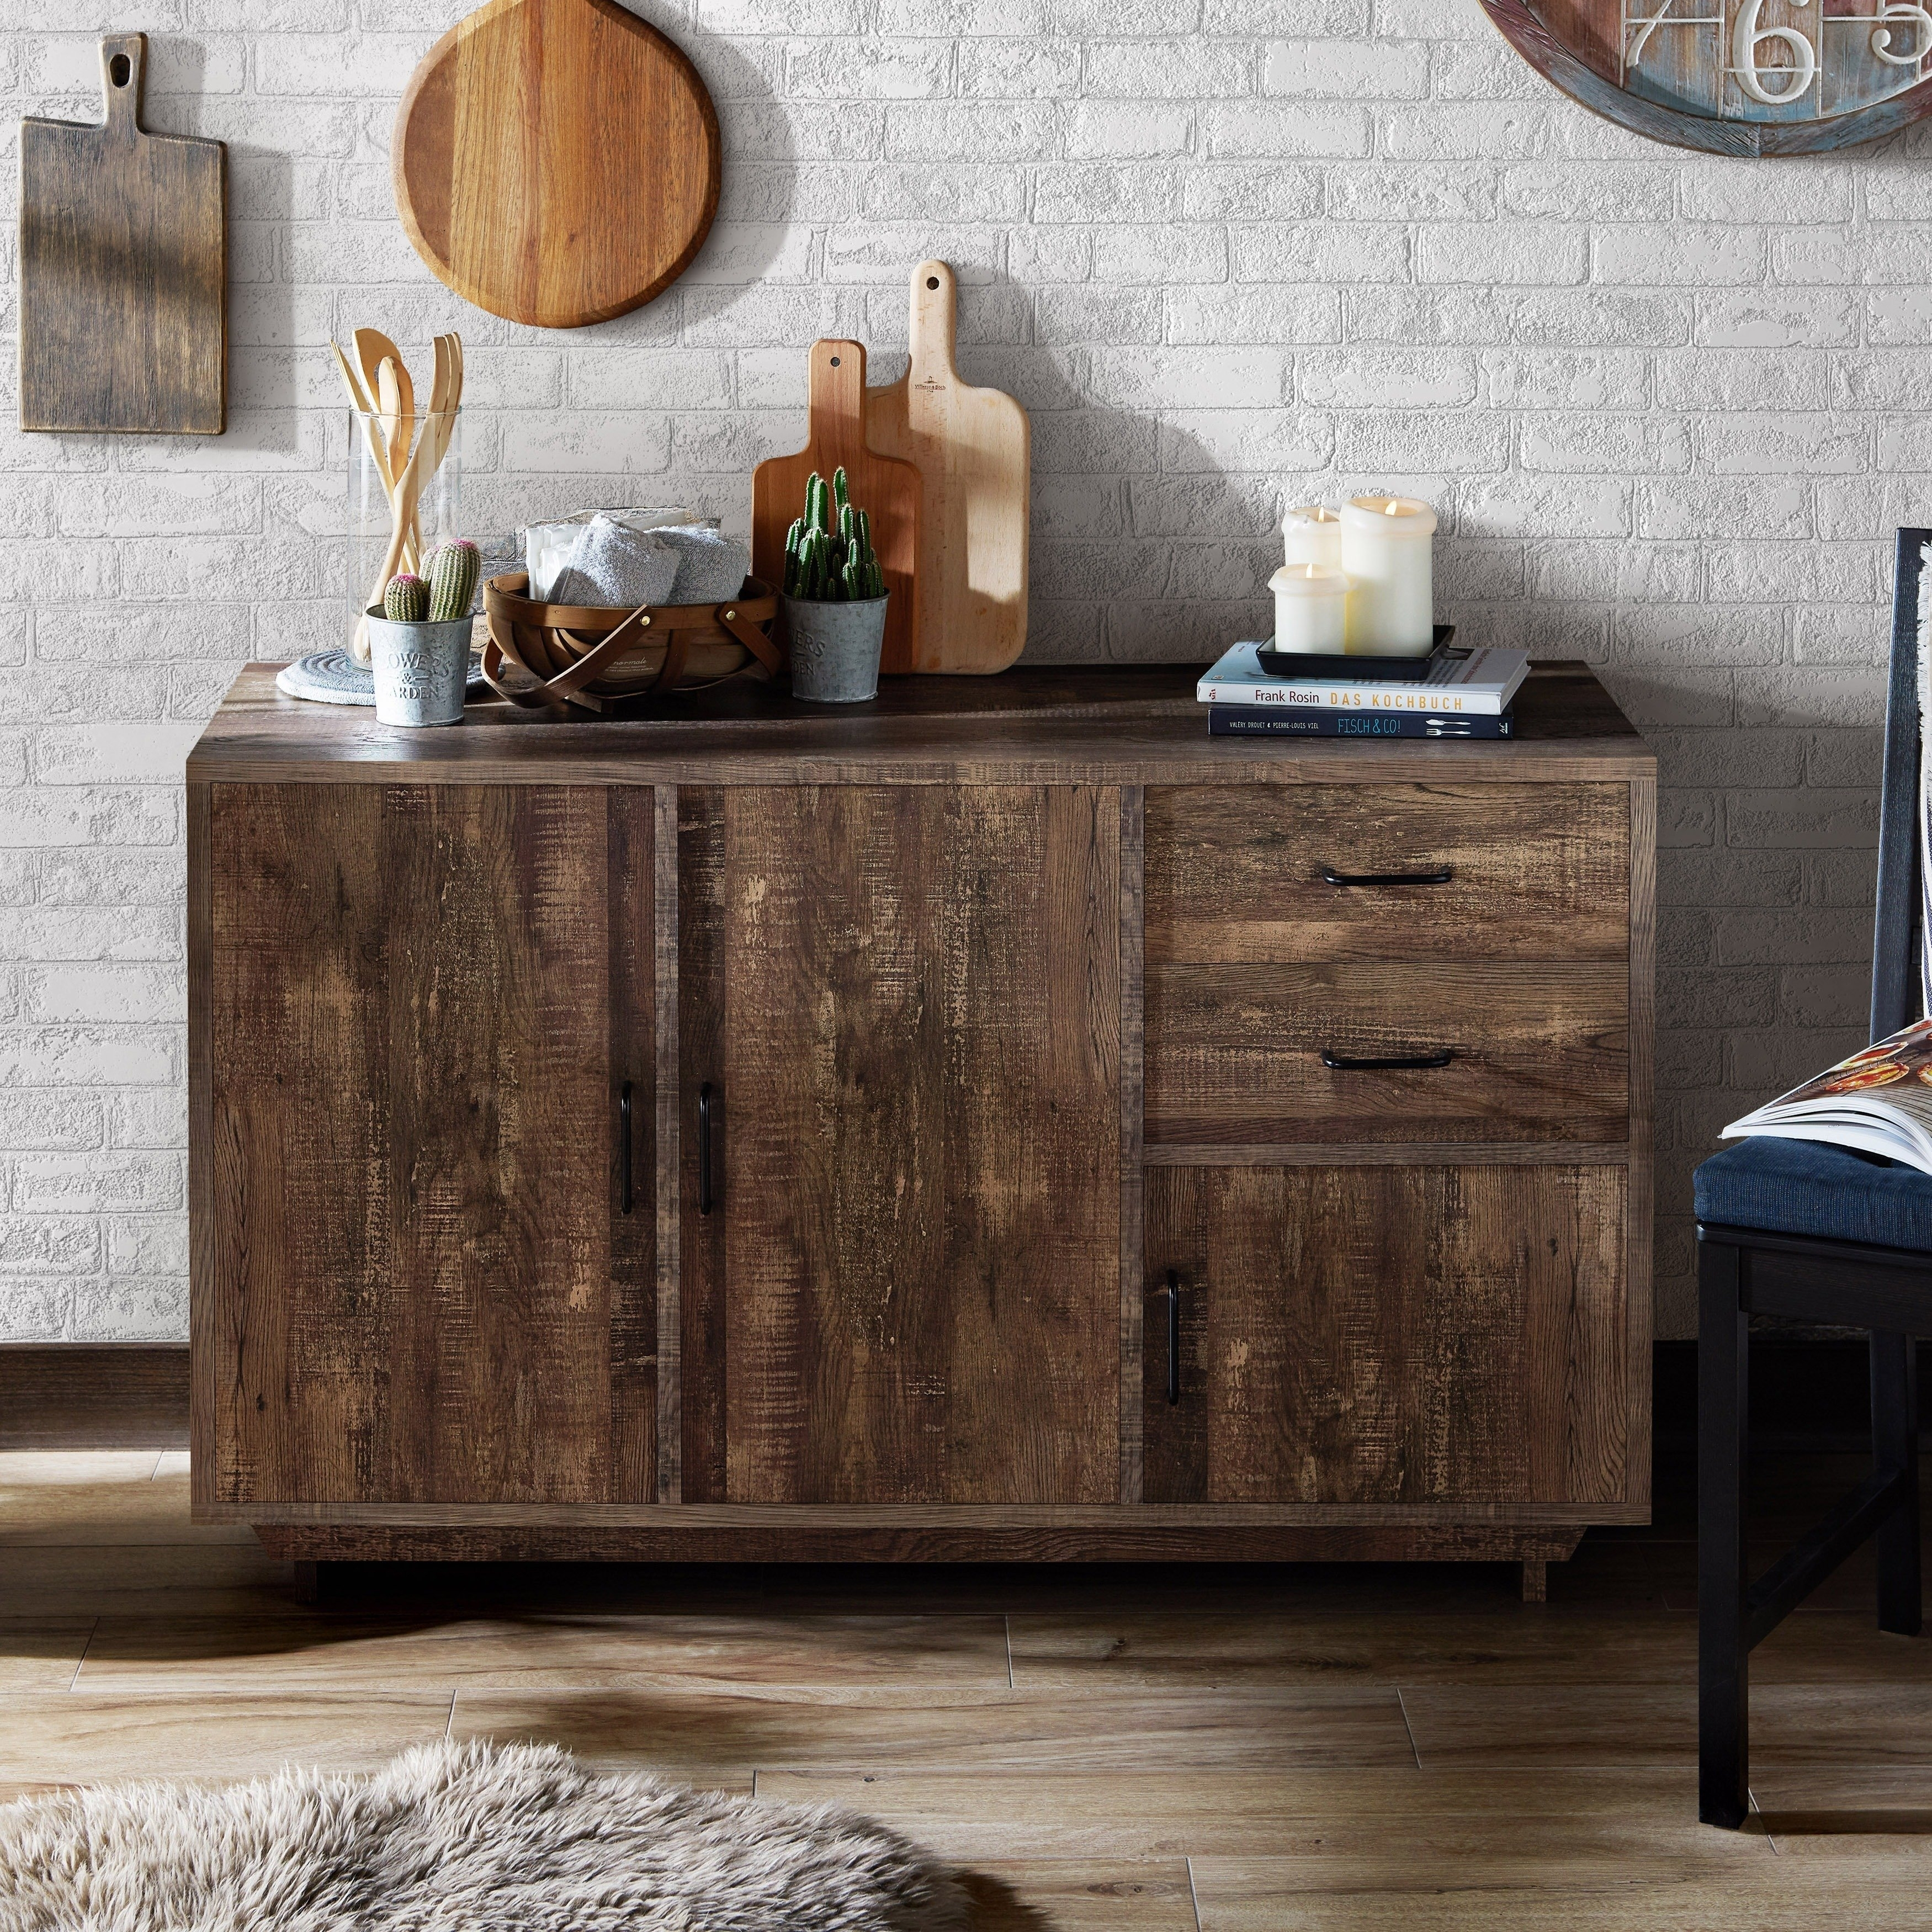 Buy Buffets, Sideboards & China Cabinets Online At Overstock inside Reclaimed 3 Drawer Icebox Sideboards (Image 4 of 30)